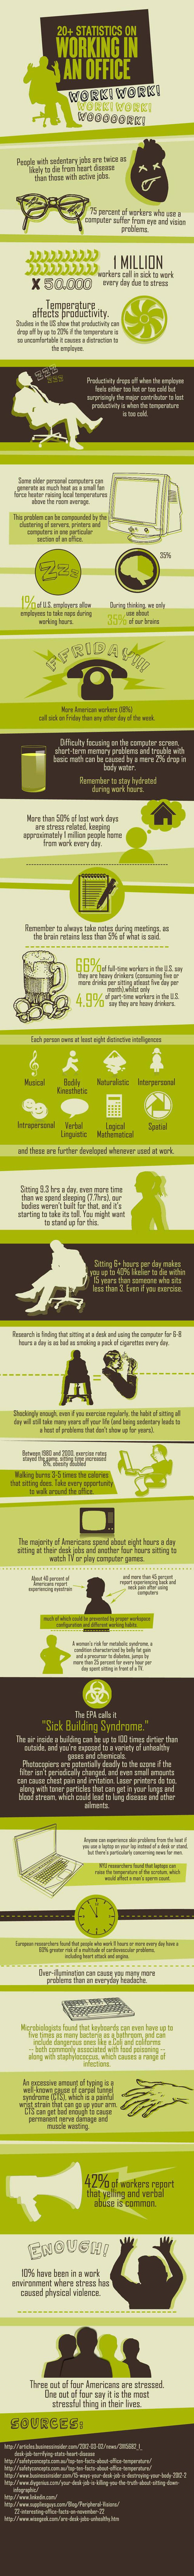 working infographic1 Working in an Office   Infographic